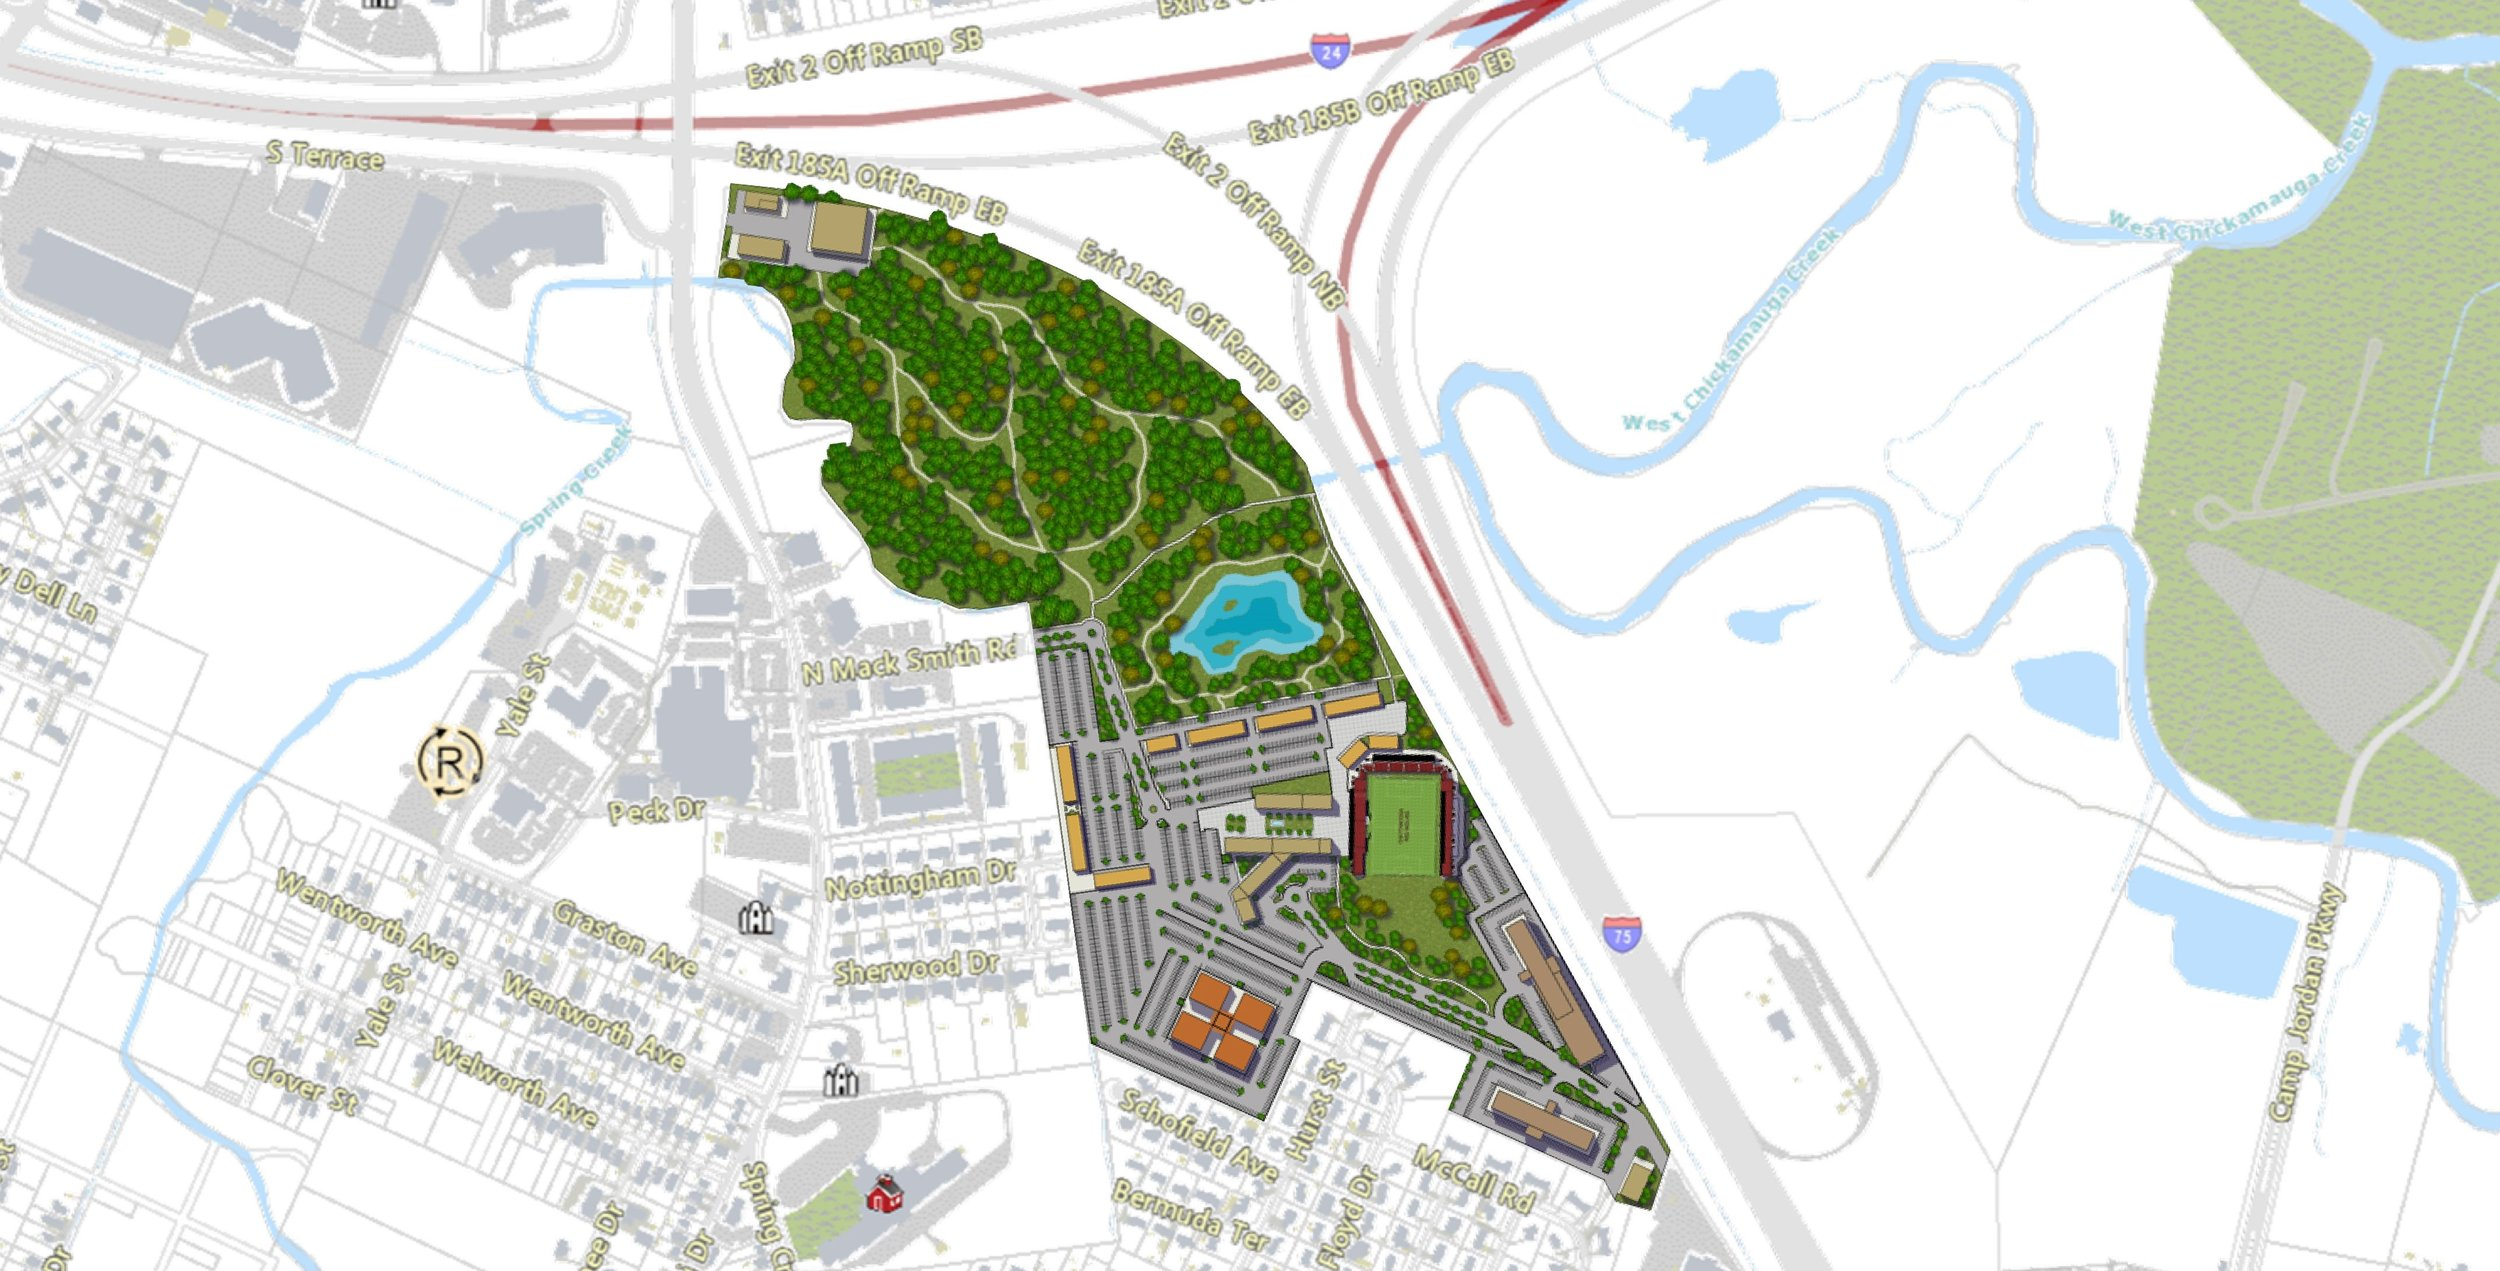 Chattanooga Red Wolves Soccer Stadium and Mixed Use Development